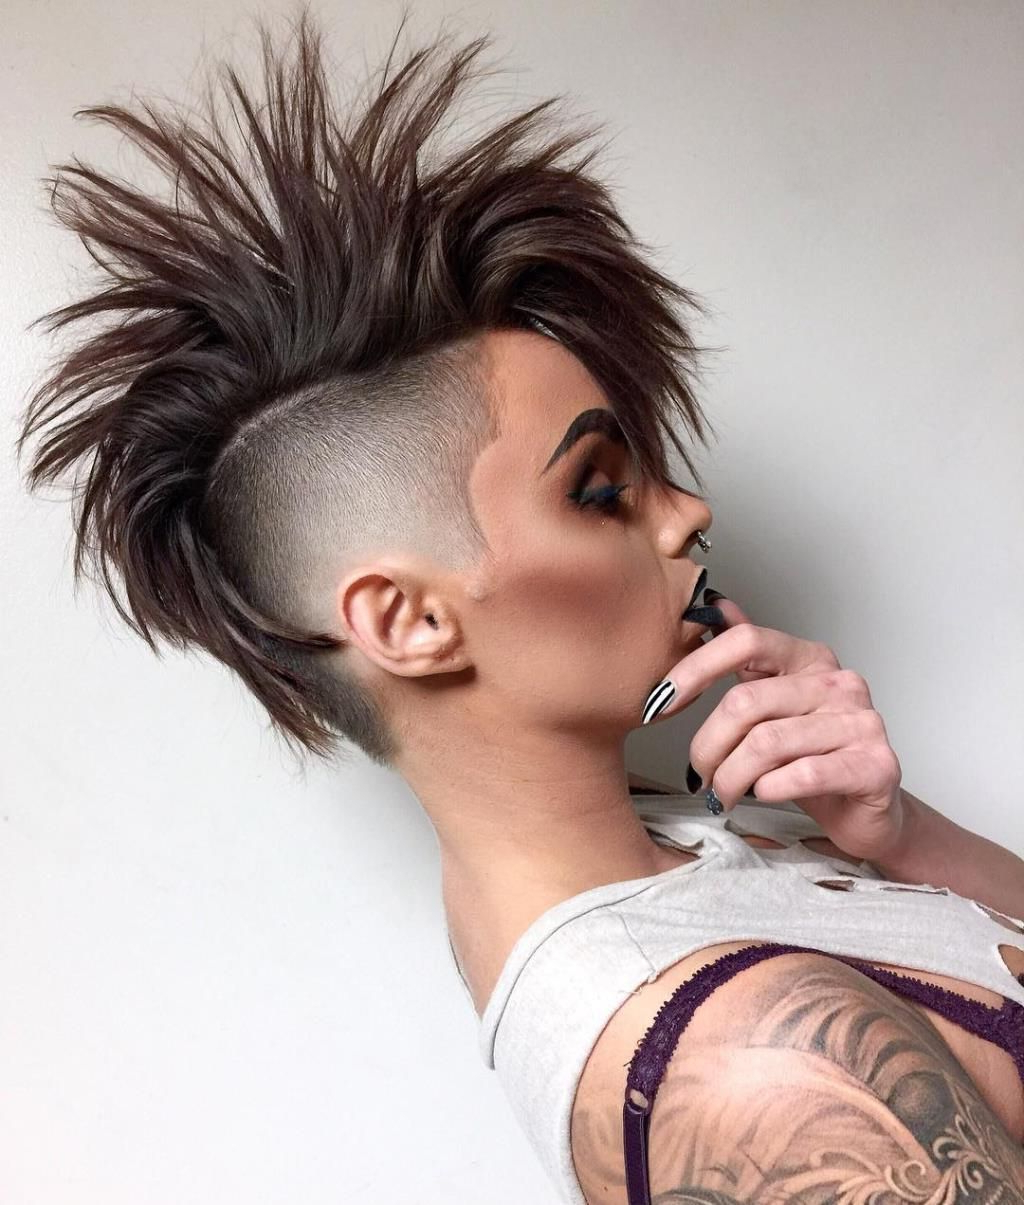 Widely Used Short Hair Wedding Fauxhawk Hairstyles With Shaved Sides In That Fade!!! Sexy Mohawk Girls (View 19 of 20)